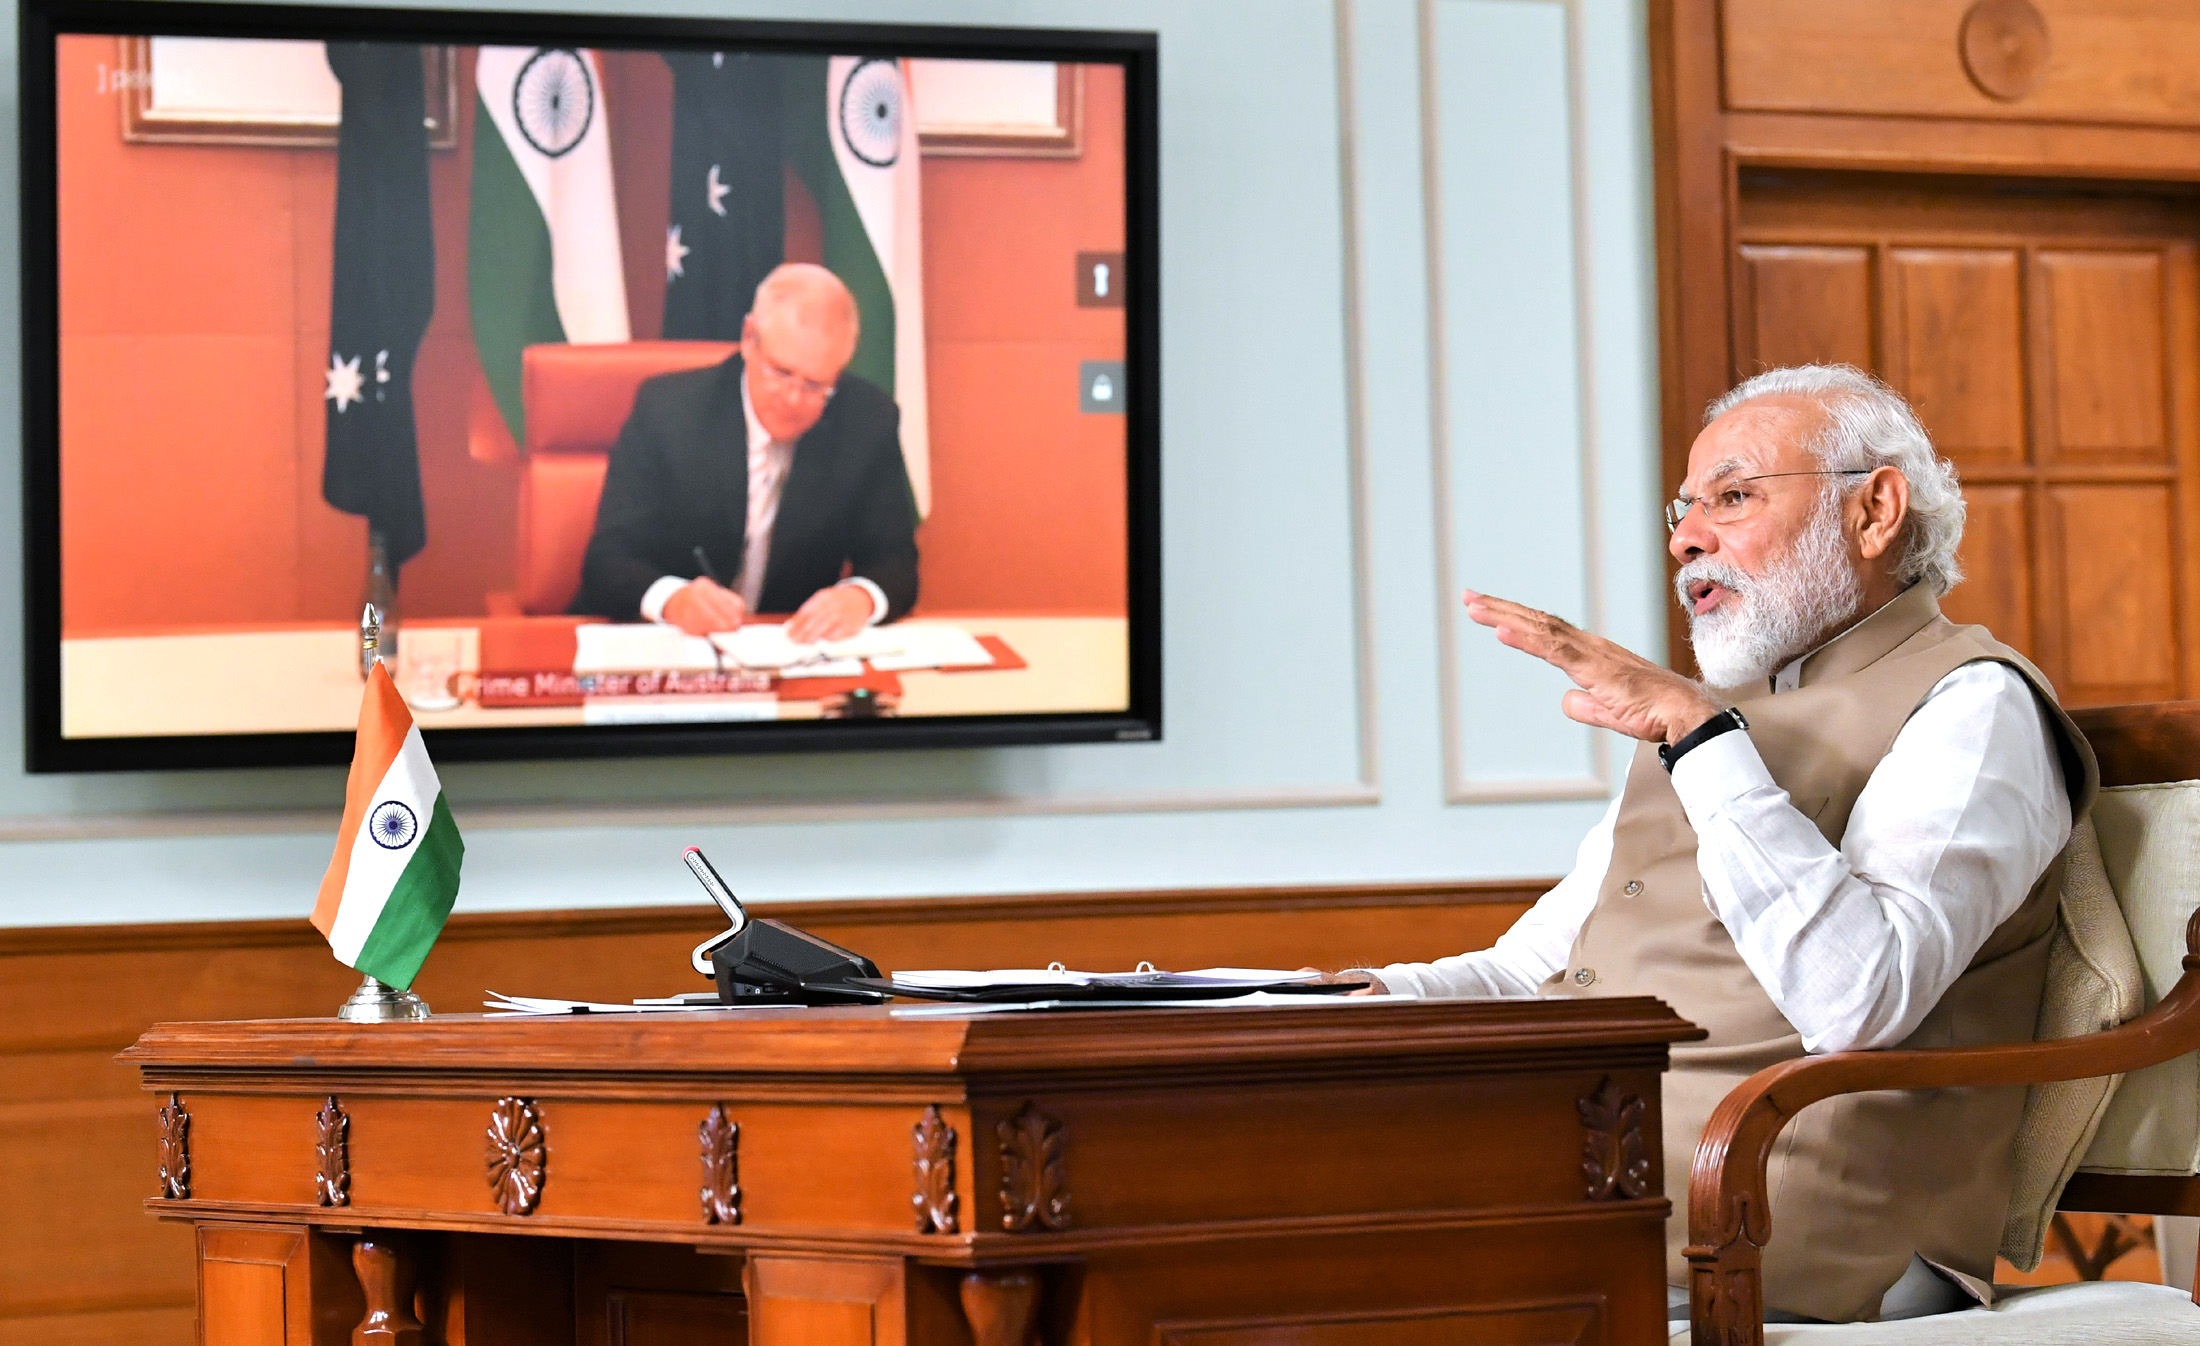 The Prime Minister, Shri Narendra Modi with the Prime Minister of Australia, Mr. Scott Morrison at the India - Australia Leaders' Virtual Summit, in New Delhi on June 04, 2020.